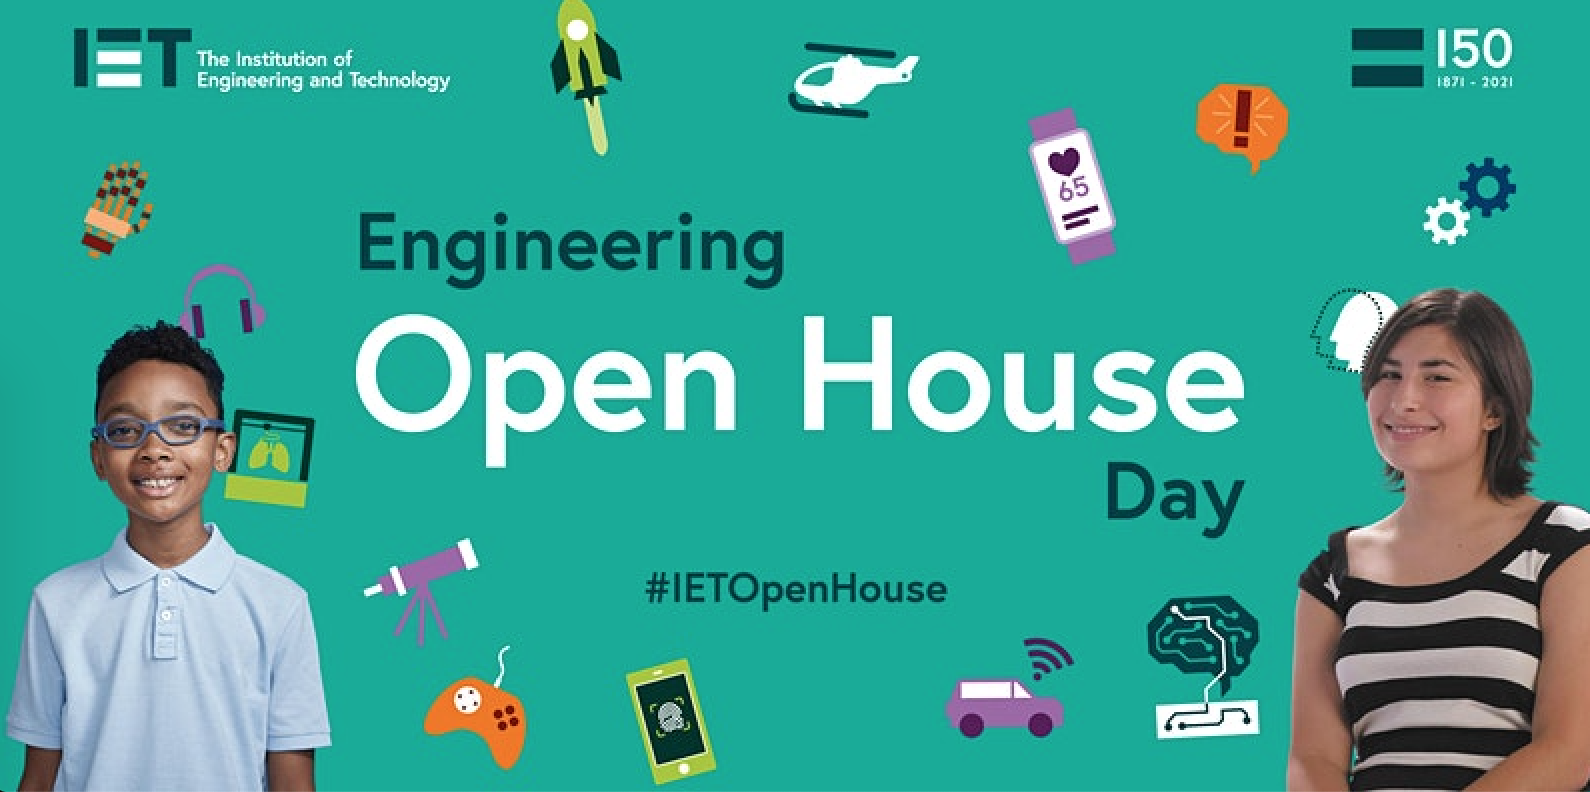 IET Engineering open house day